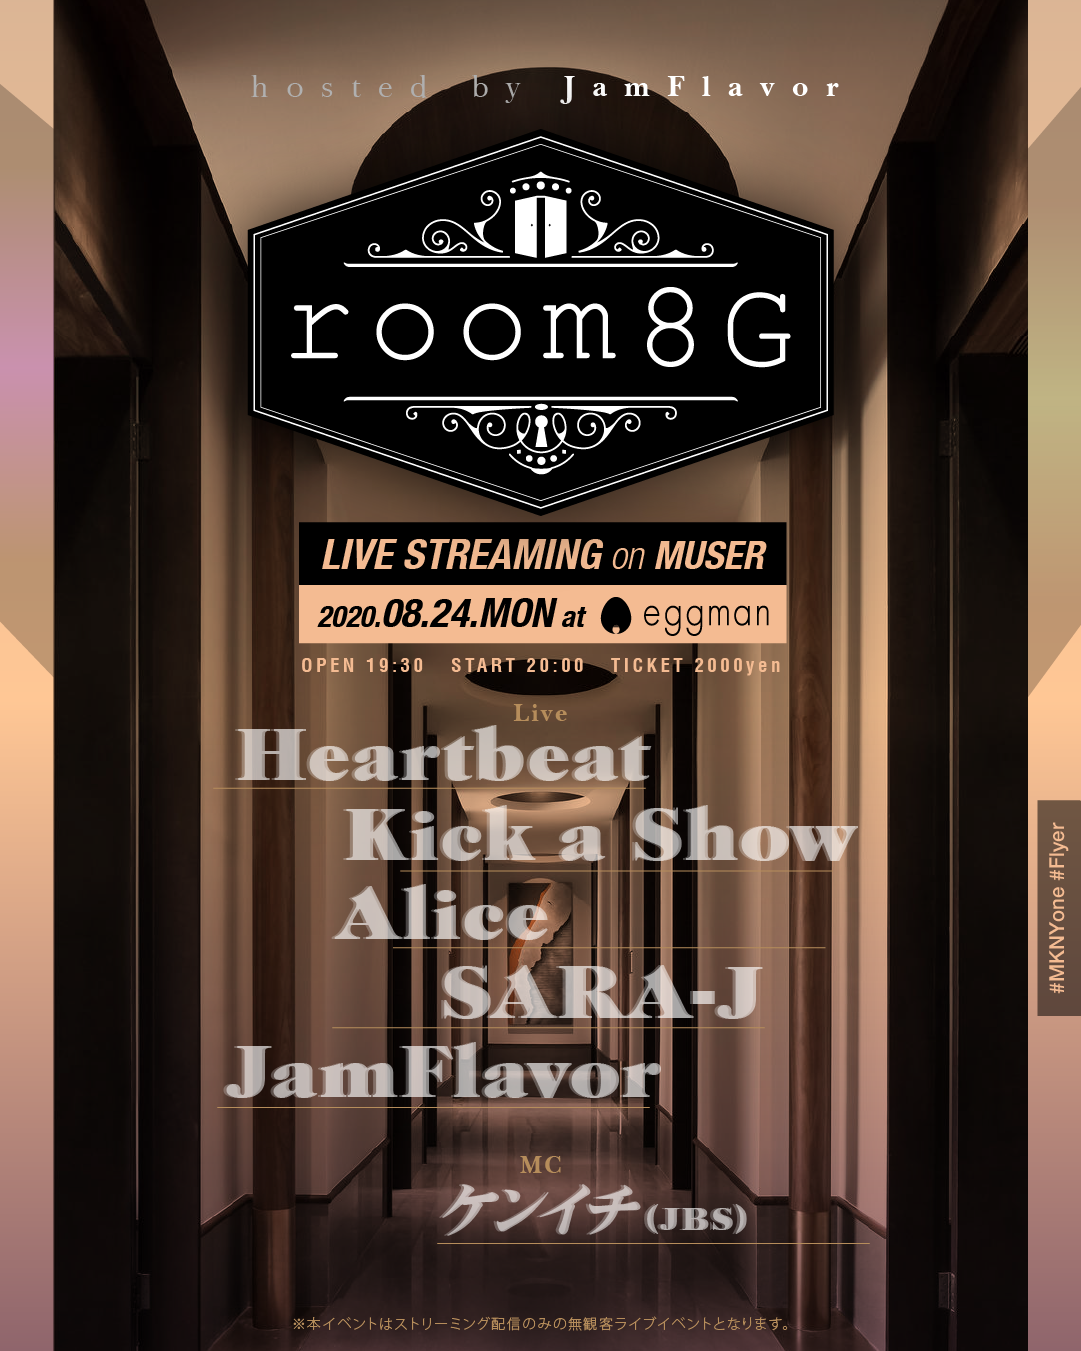 【room 8G】 hosted by JamFlavor  ※無観客配信LIVE